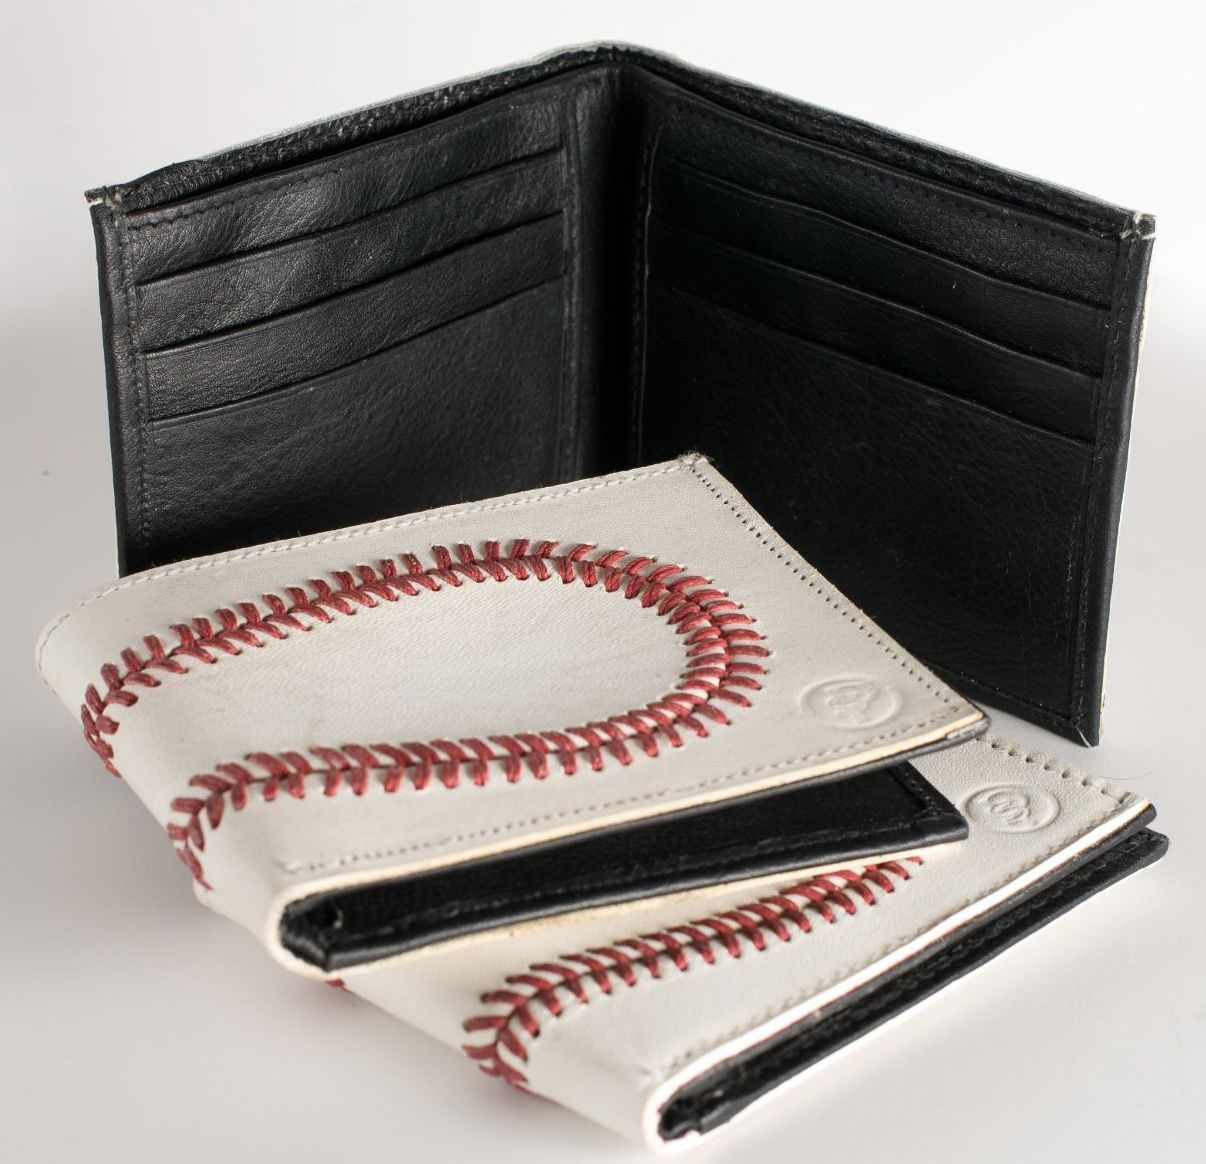 Baseball wallets the only wallet made for baseball players